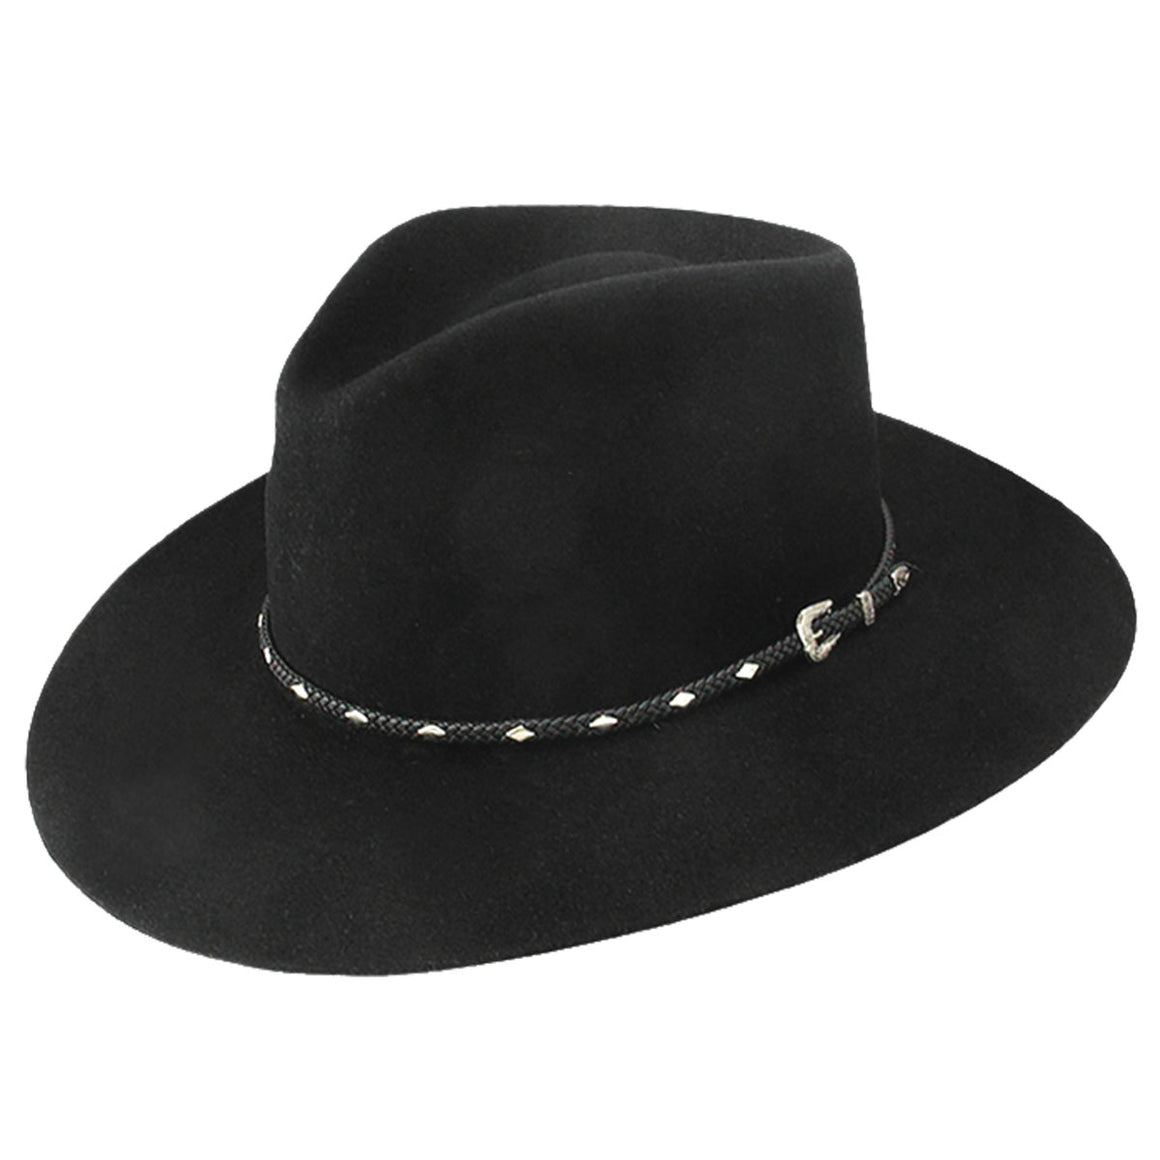 STETSON DIAMOND JIM BLACK